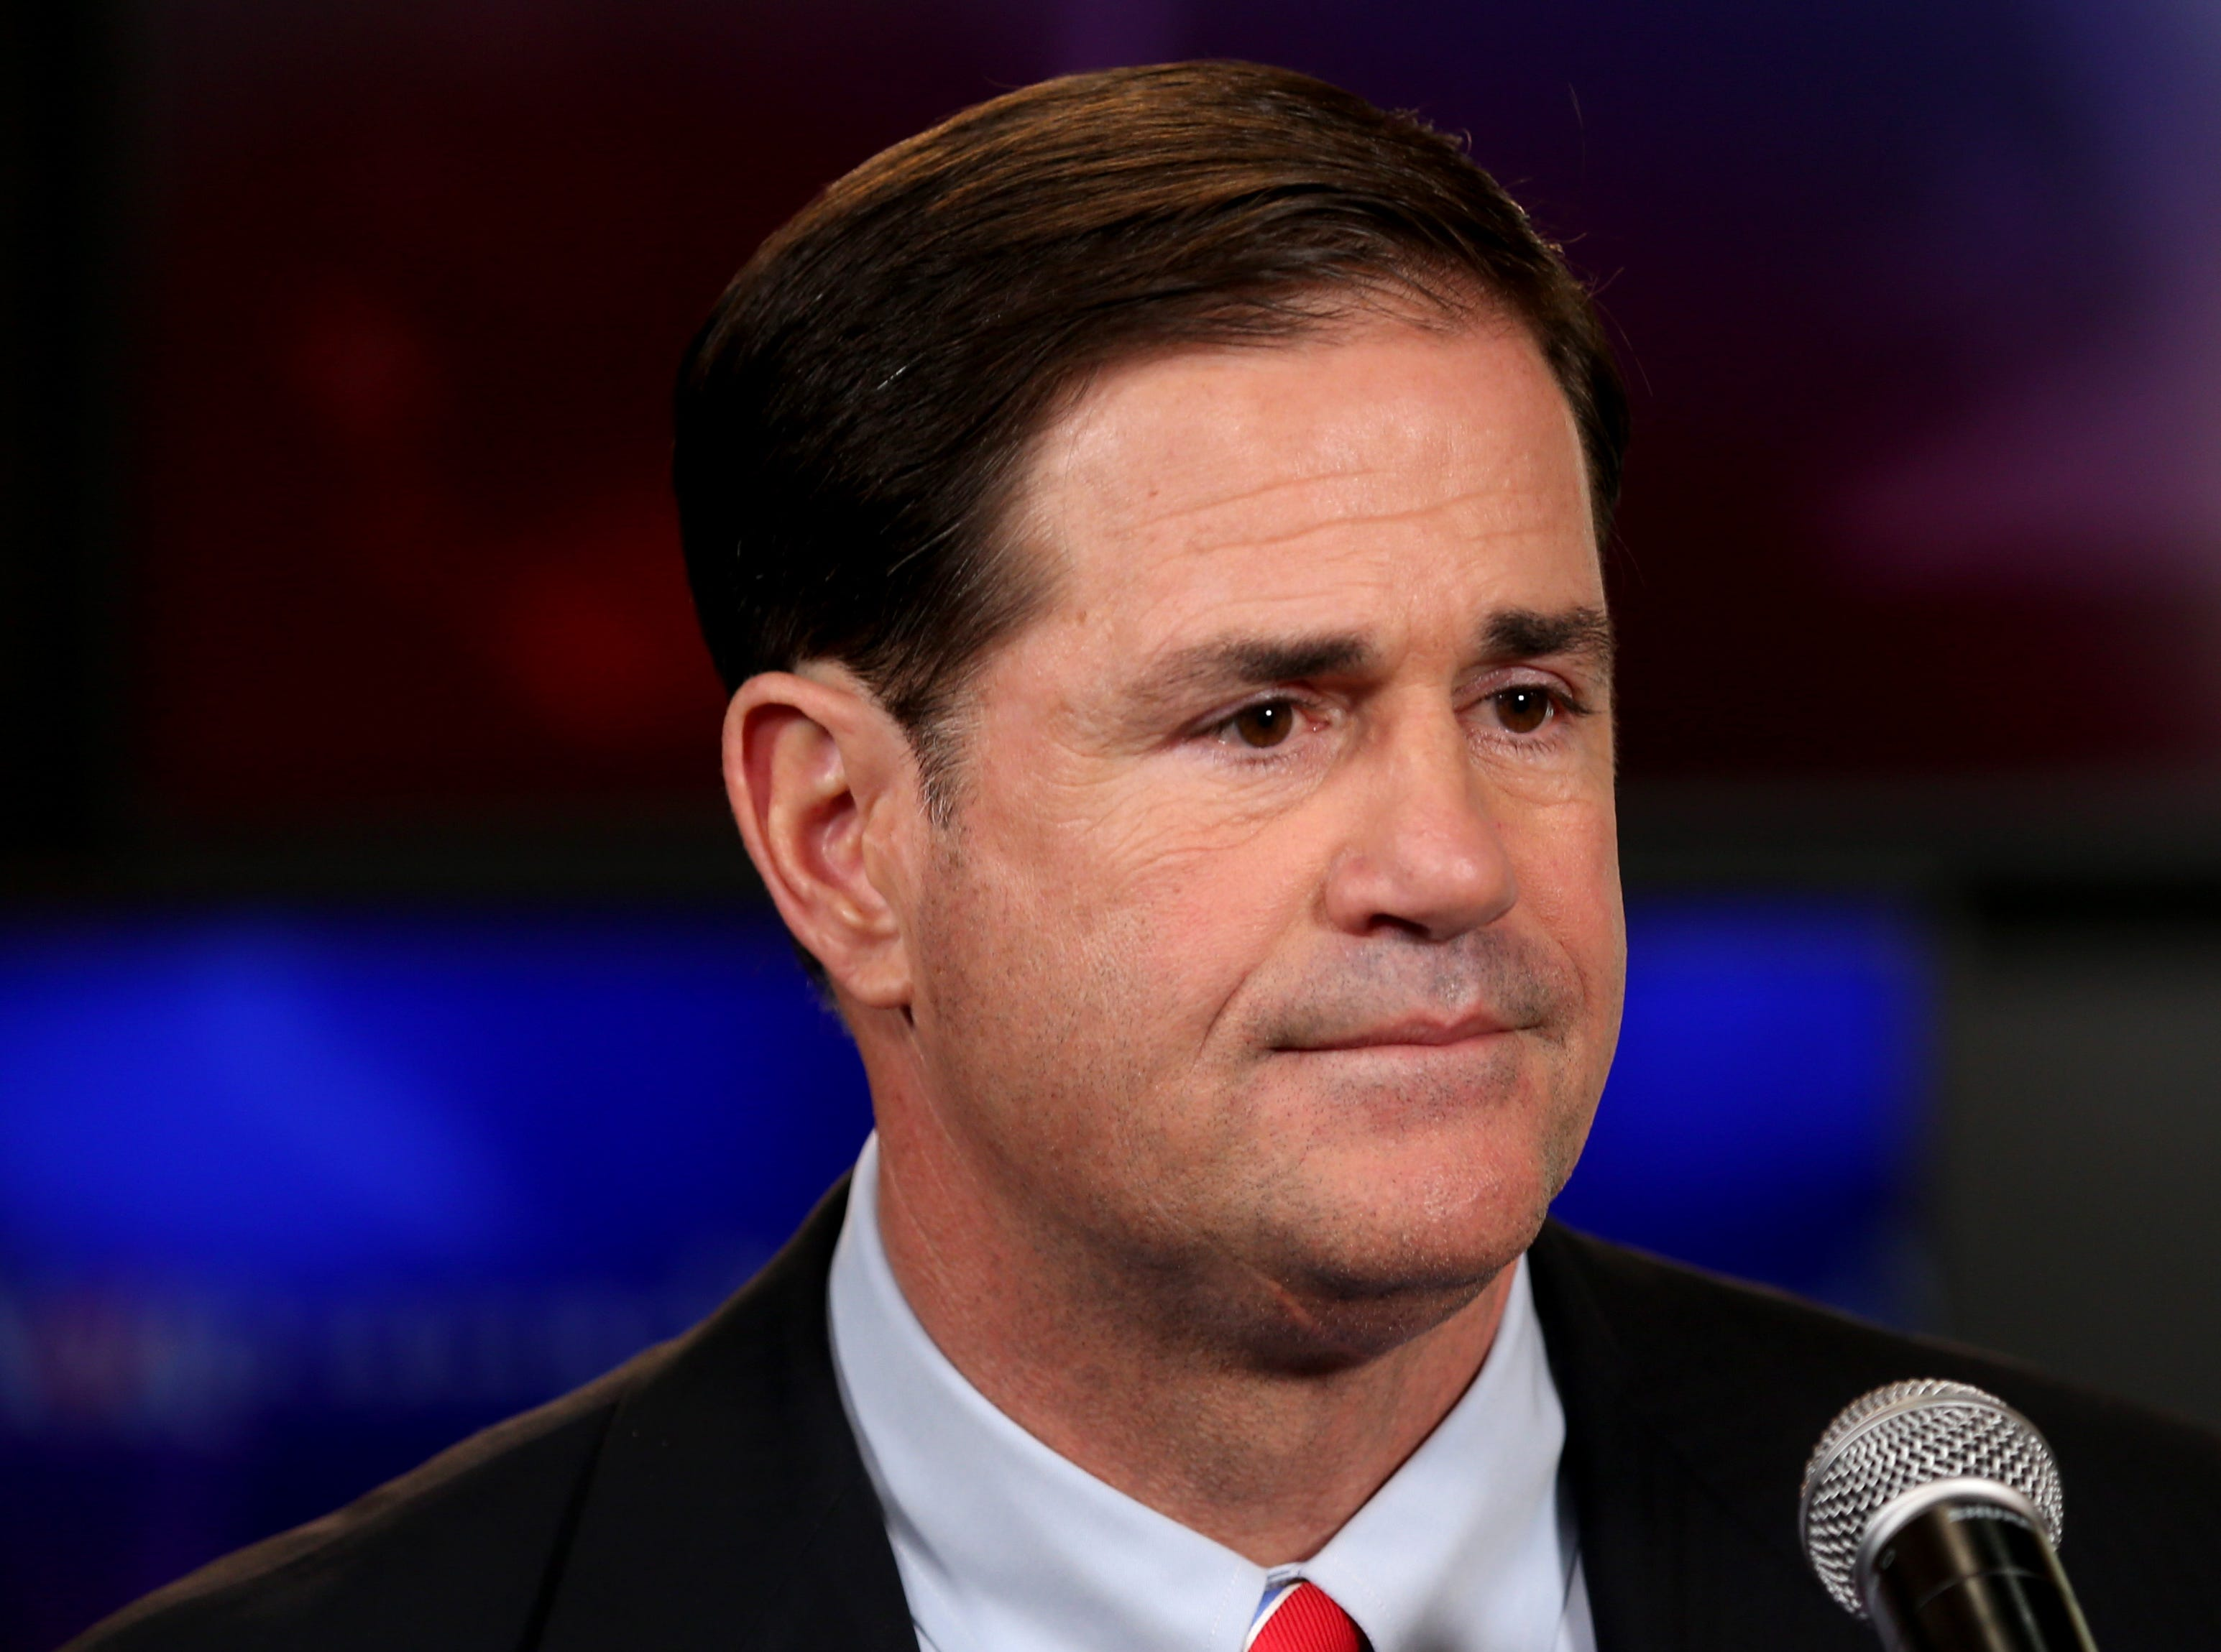 Gubernatorial candidate Republican Doug Ducey gives a few remarks to the press following a televised debate in the AZPM studios, Tuesday, Sept. 25, 2018, in Tucson.